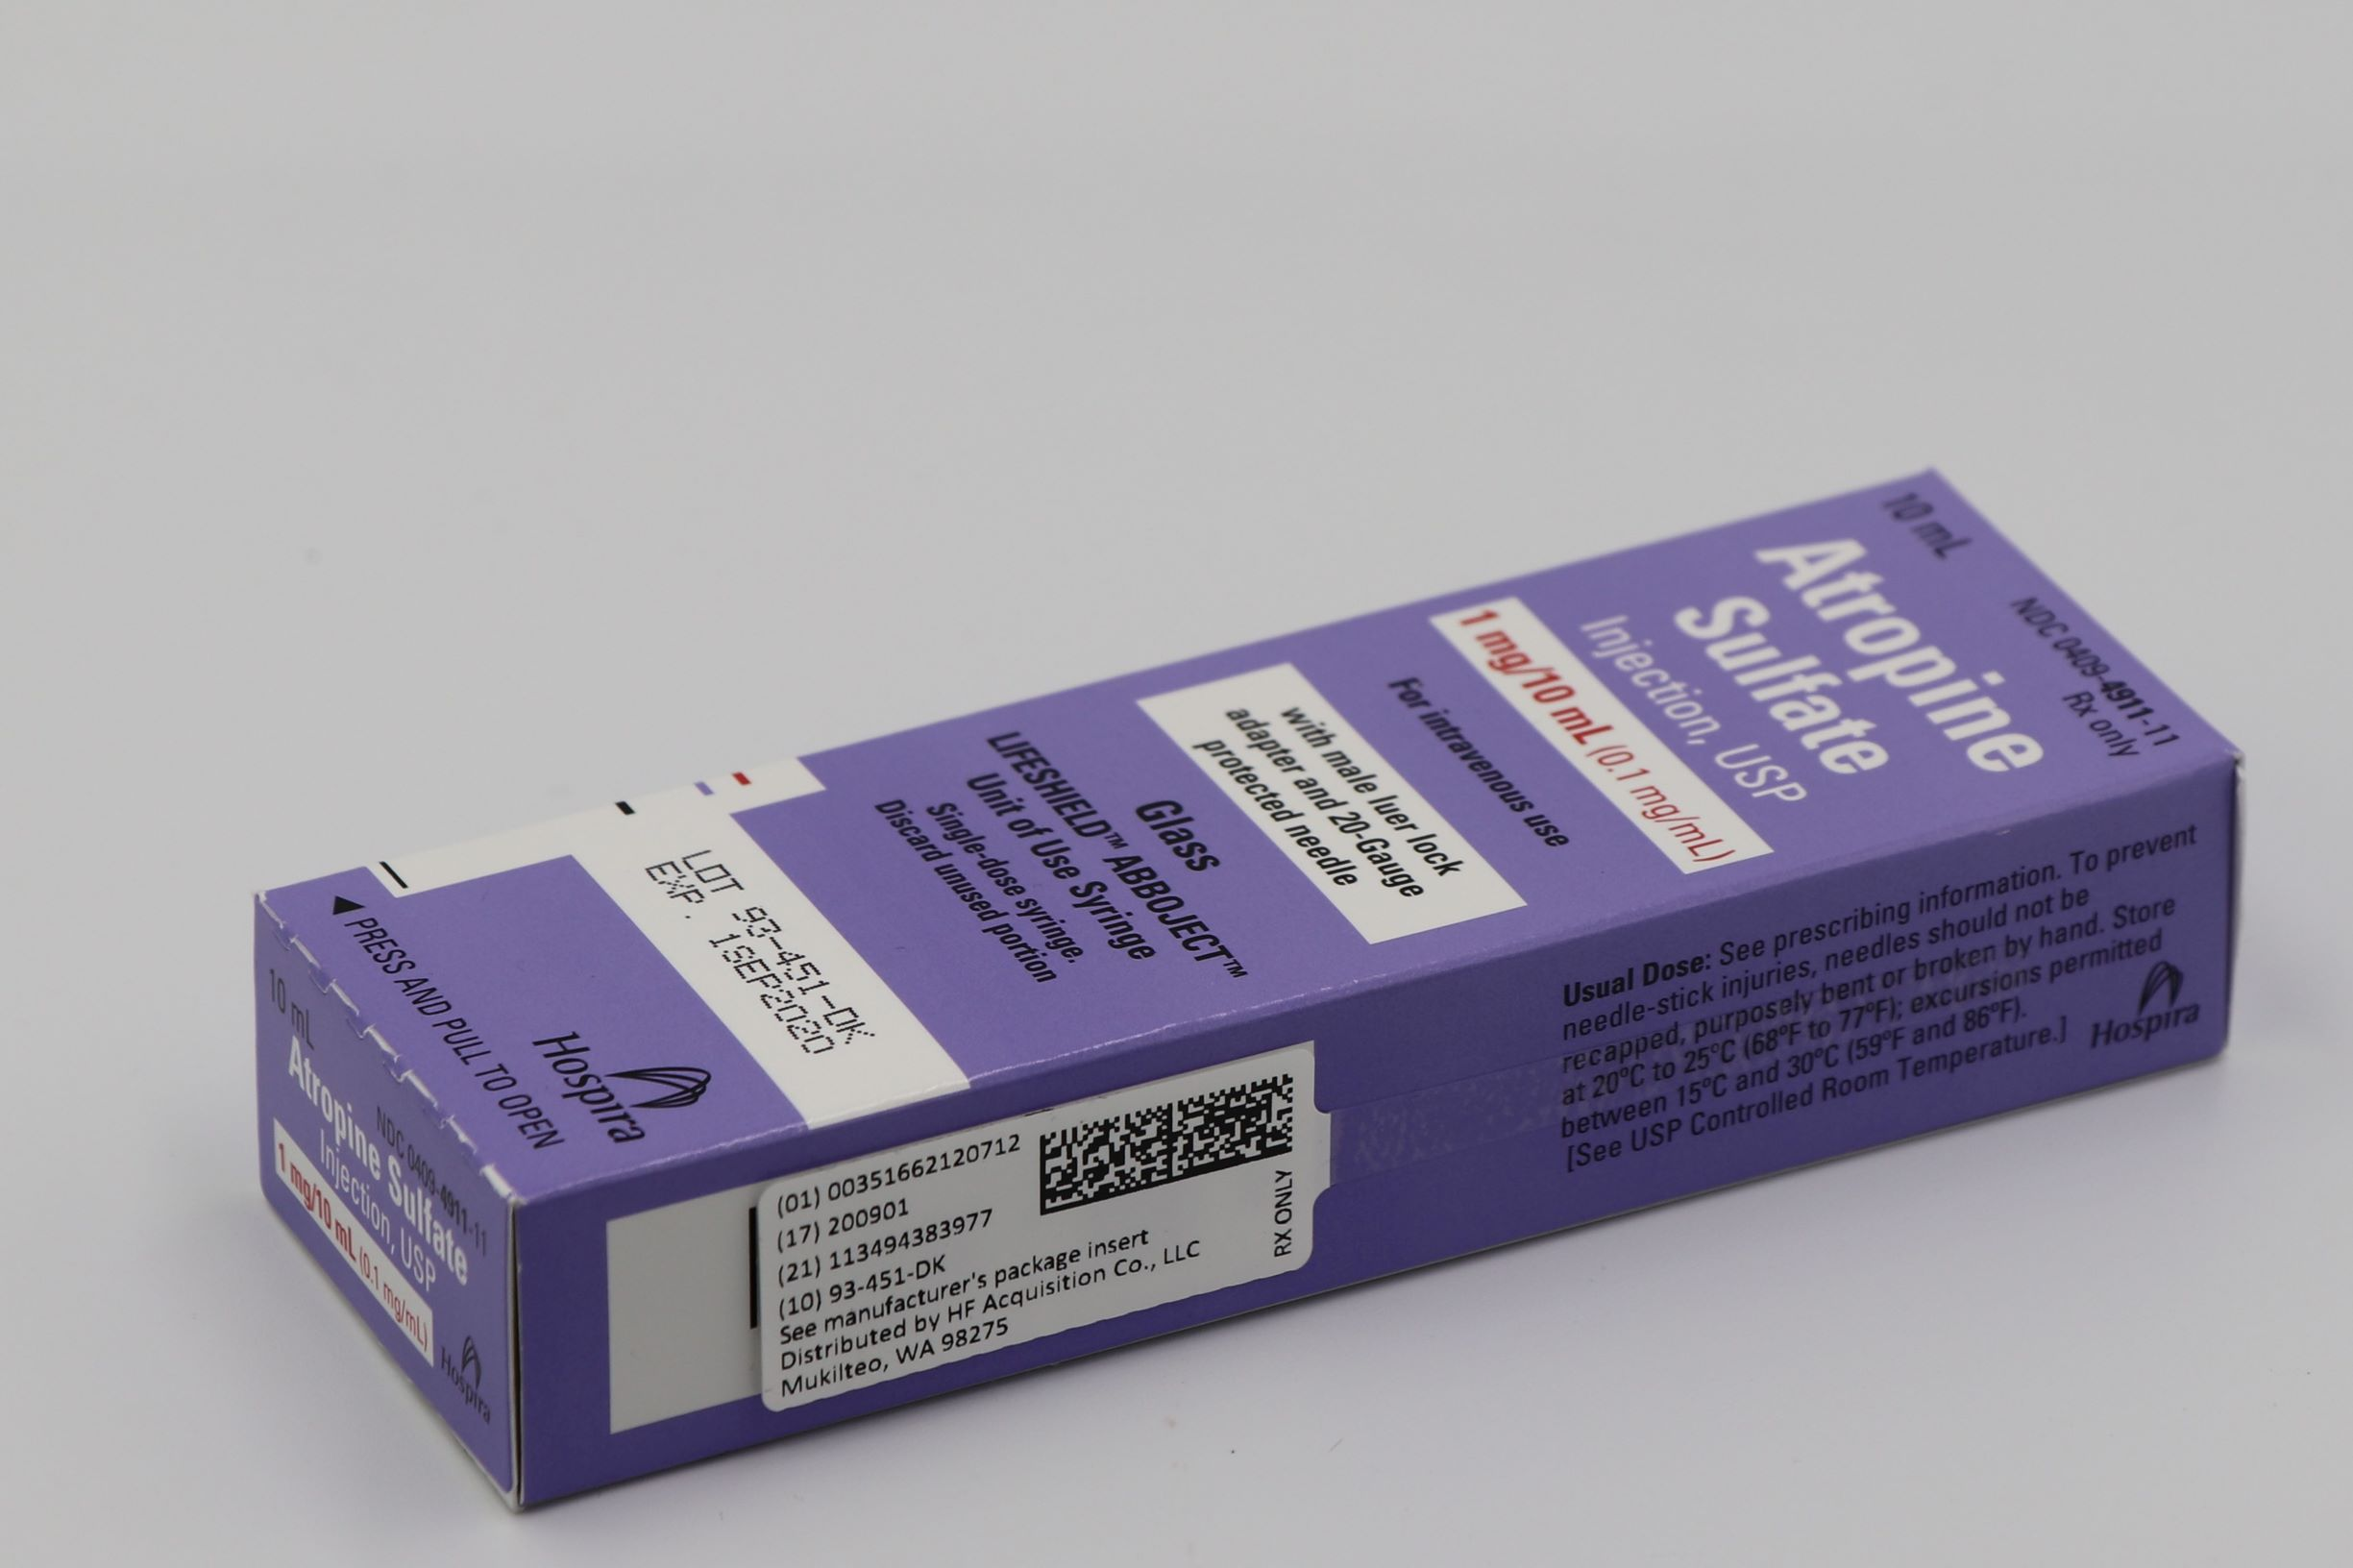 Serialized Label